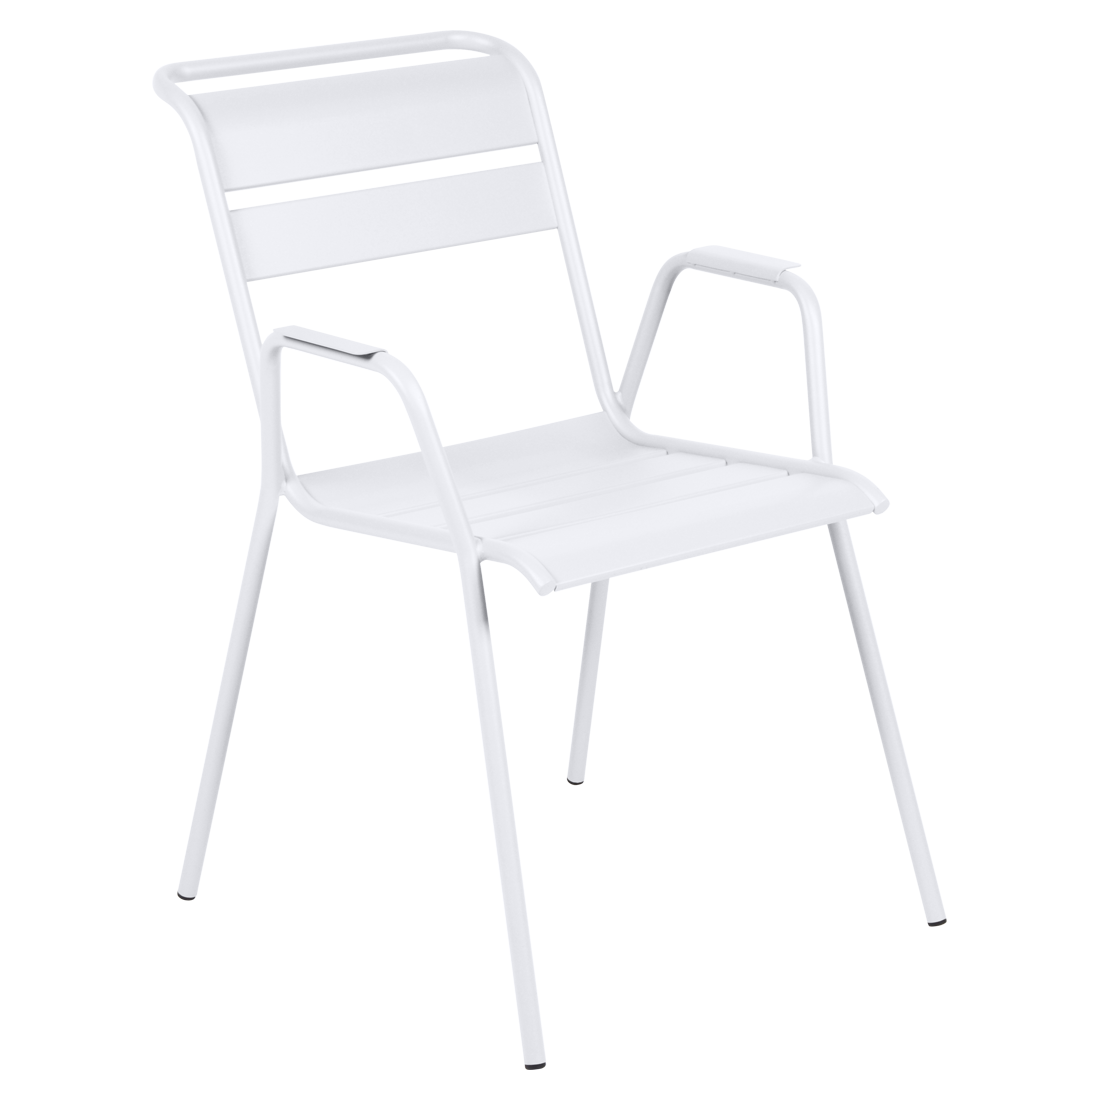 chaise metal, chaise fermob, chaise monceau, fauteuil repas metal, chaise blanche